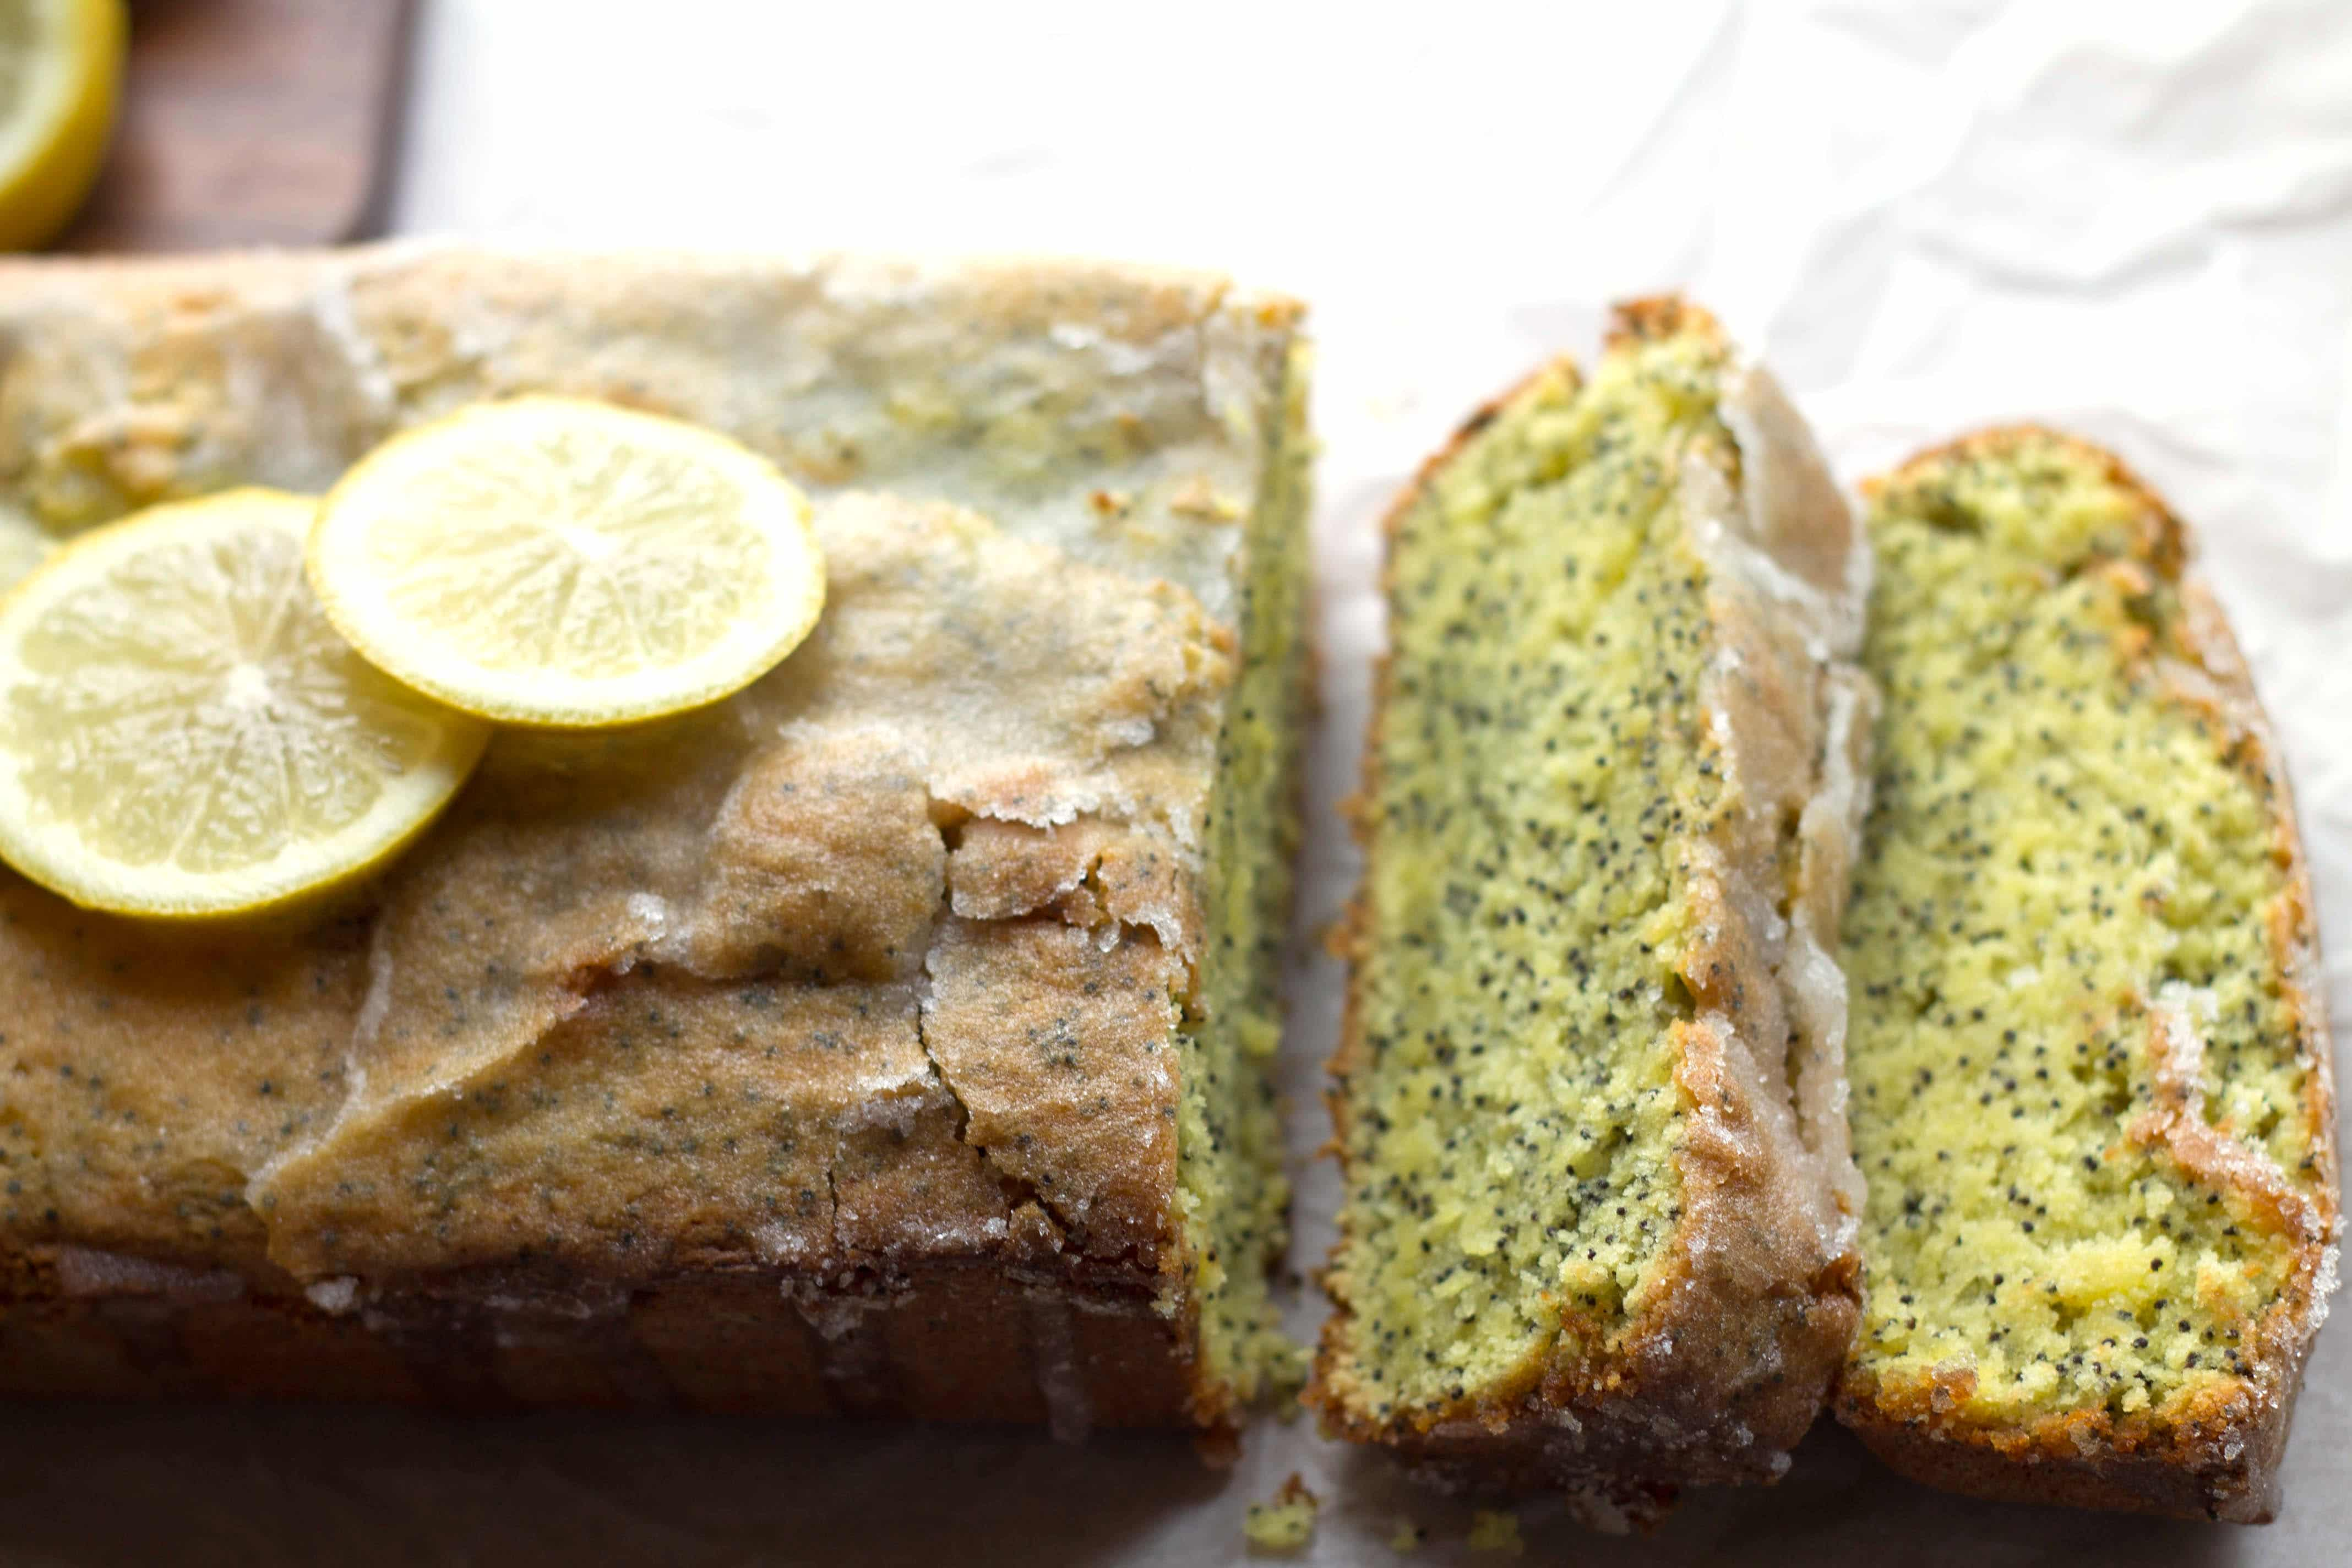 Lemon Poppy Seed Drizzle Cake - Erren's Kitchen - Lemon Drizzle Cake is a classic English recipe. Poppy seeds add a bit of a twist to this classic citrus cake with a crunchy sugar topping and moist texture.